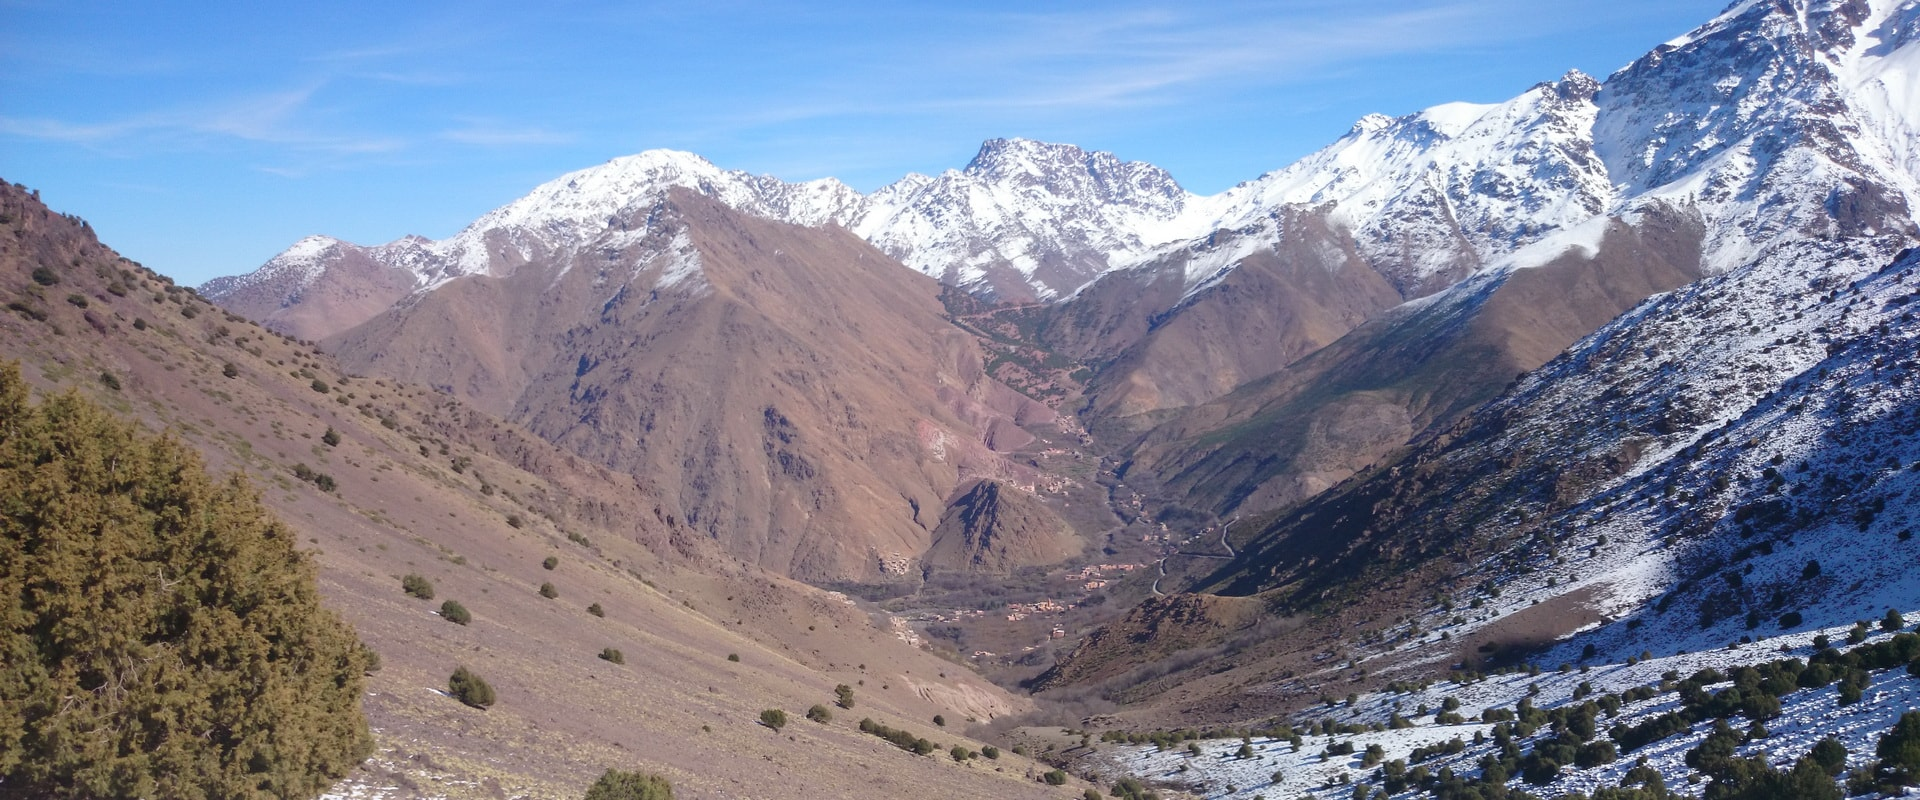 Voyages Expeditions Maroc - ascension du toubkal, villages berberes